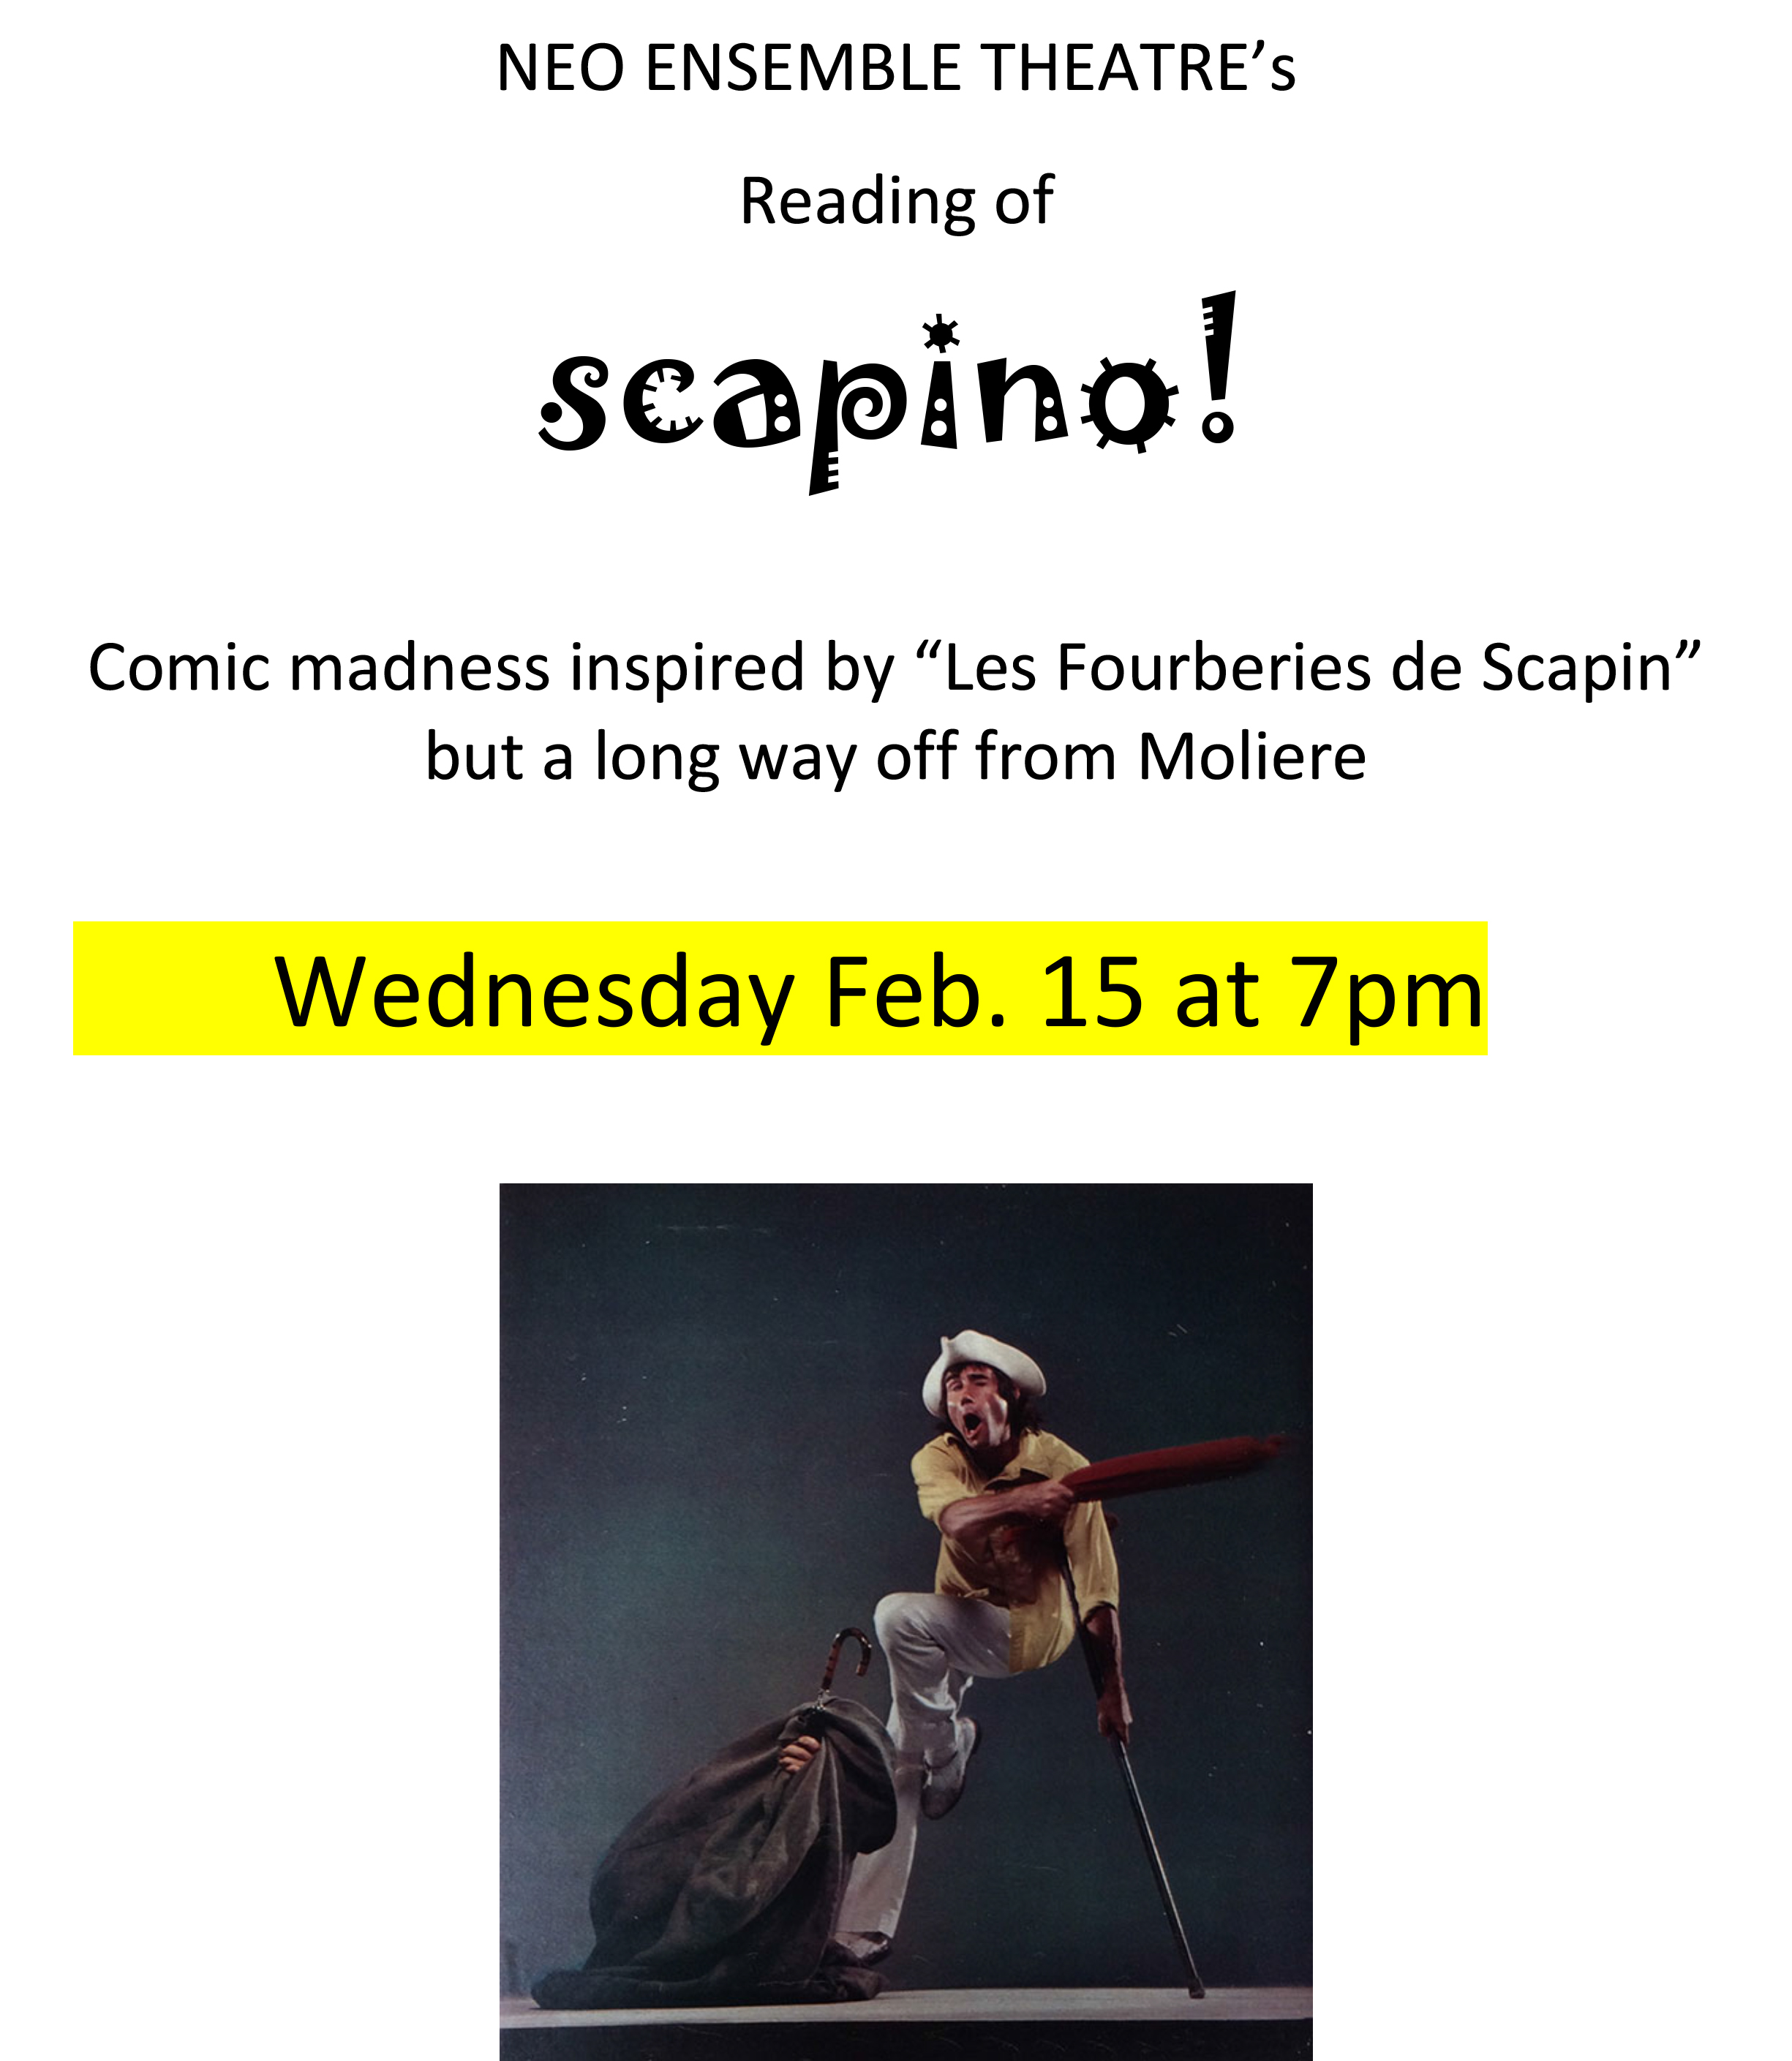 Microsoft Word - scapino poster.docx